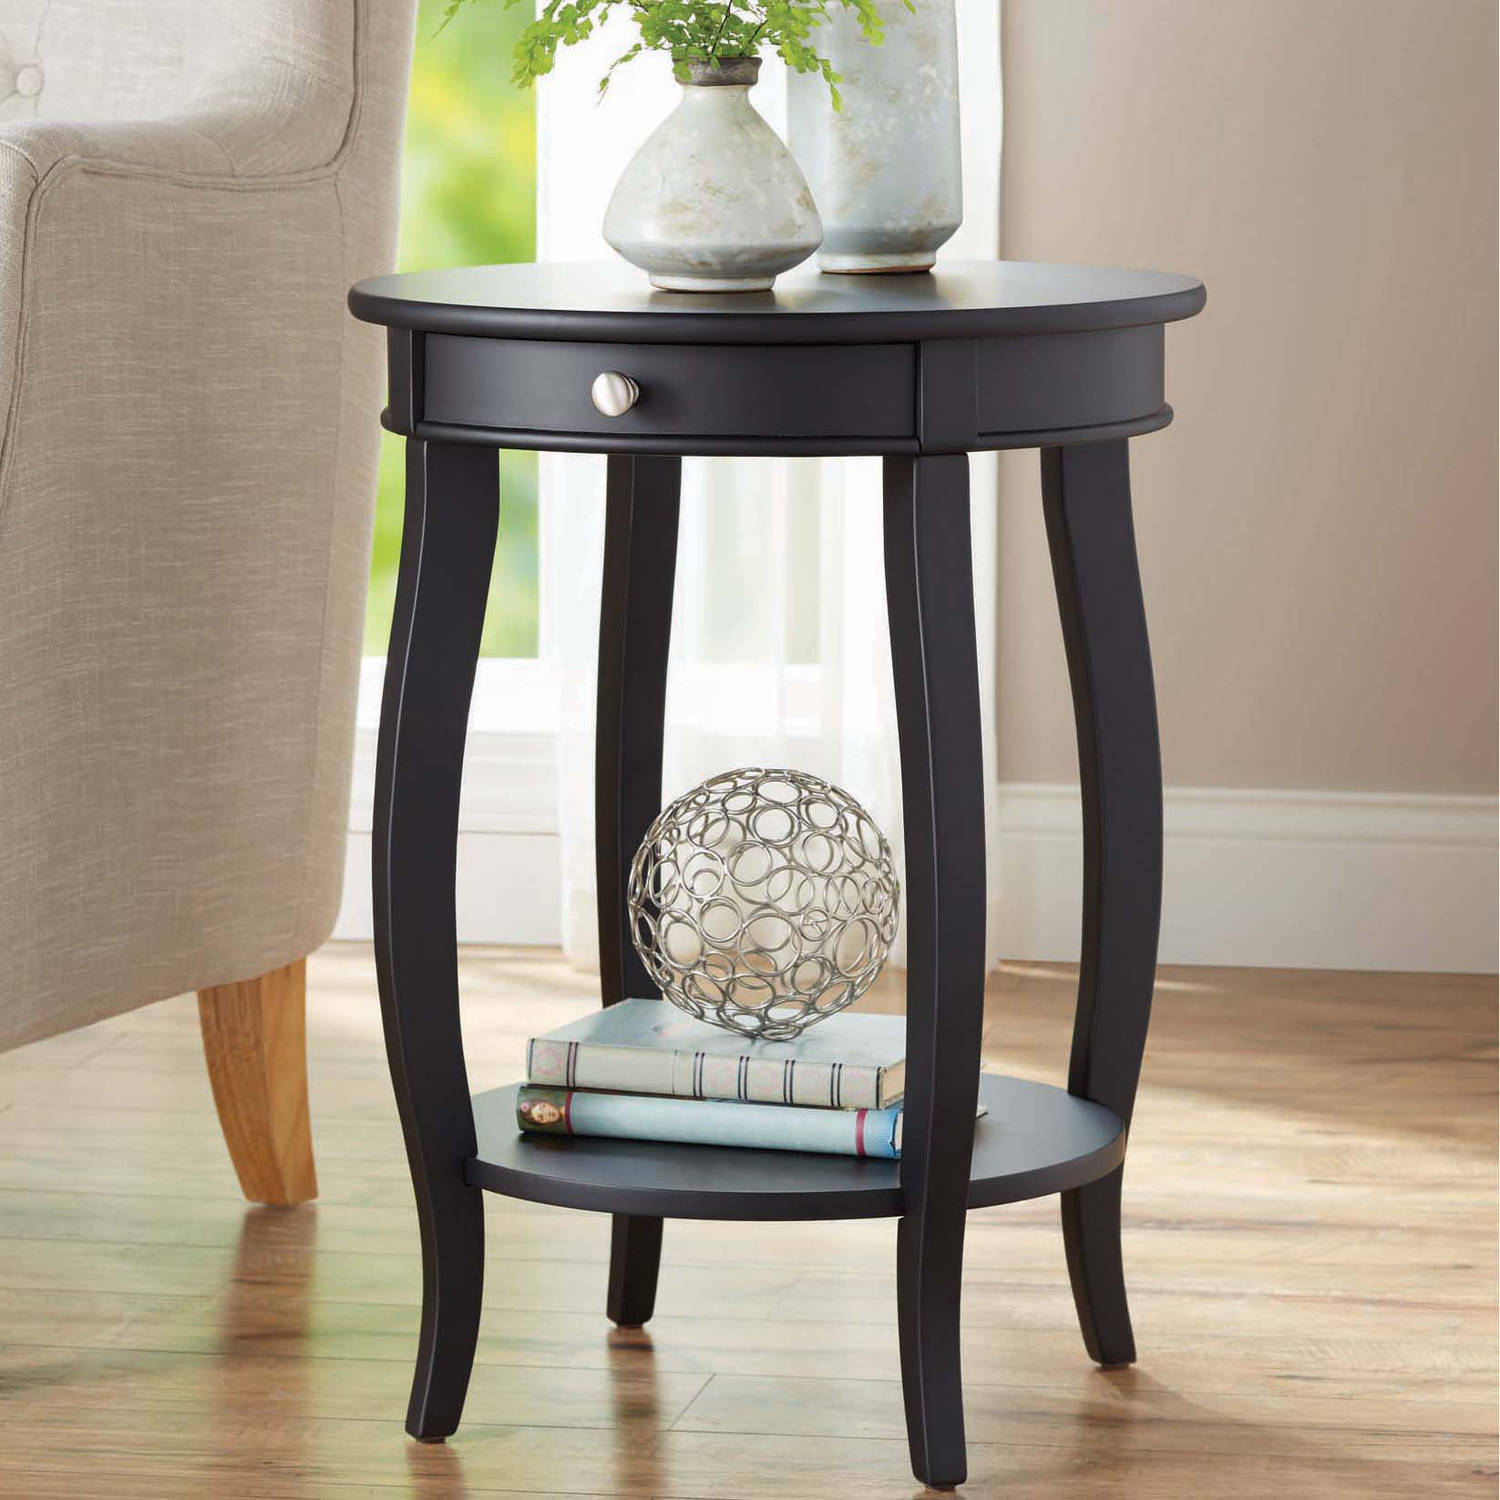 Delightful Better Homes And Gardens Round Accent Table With Drawer, Multiple Colors    Walmart.com